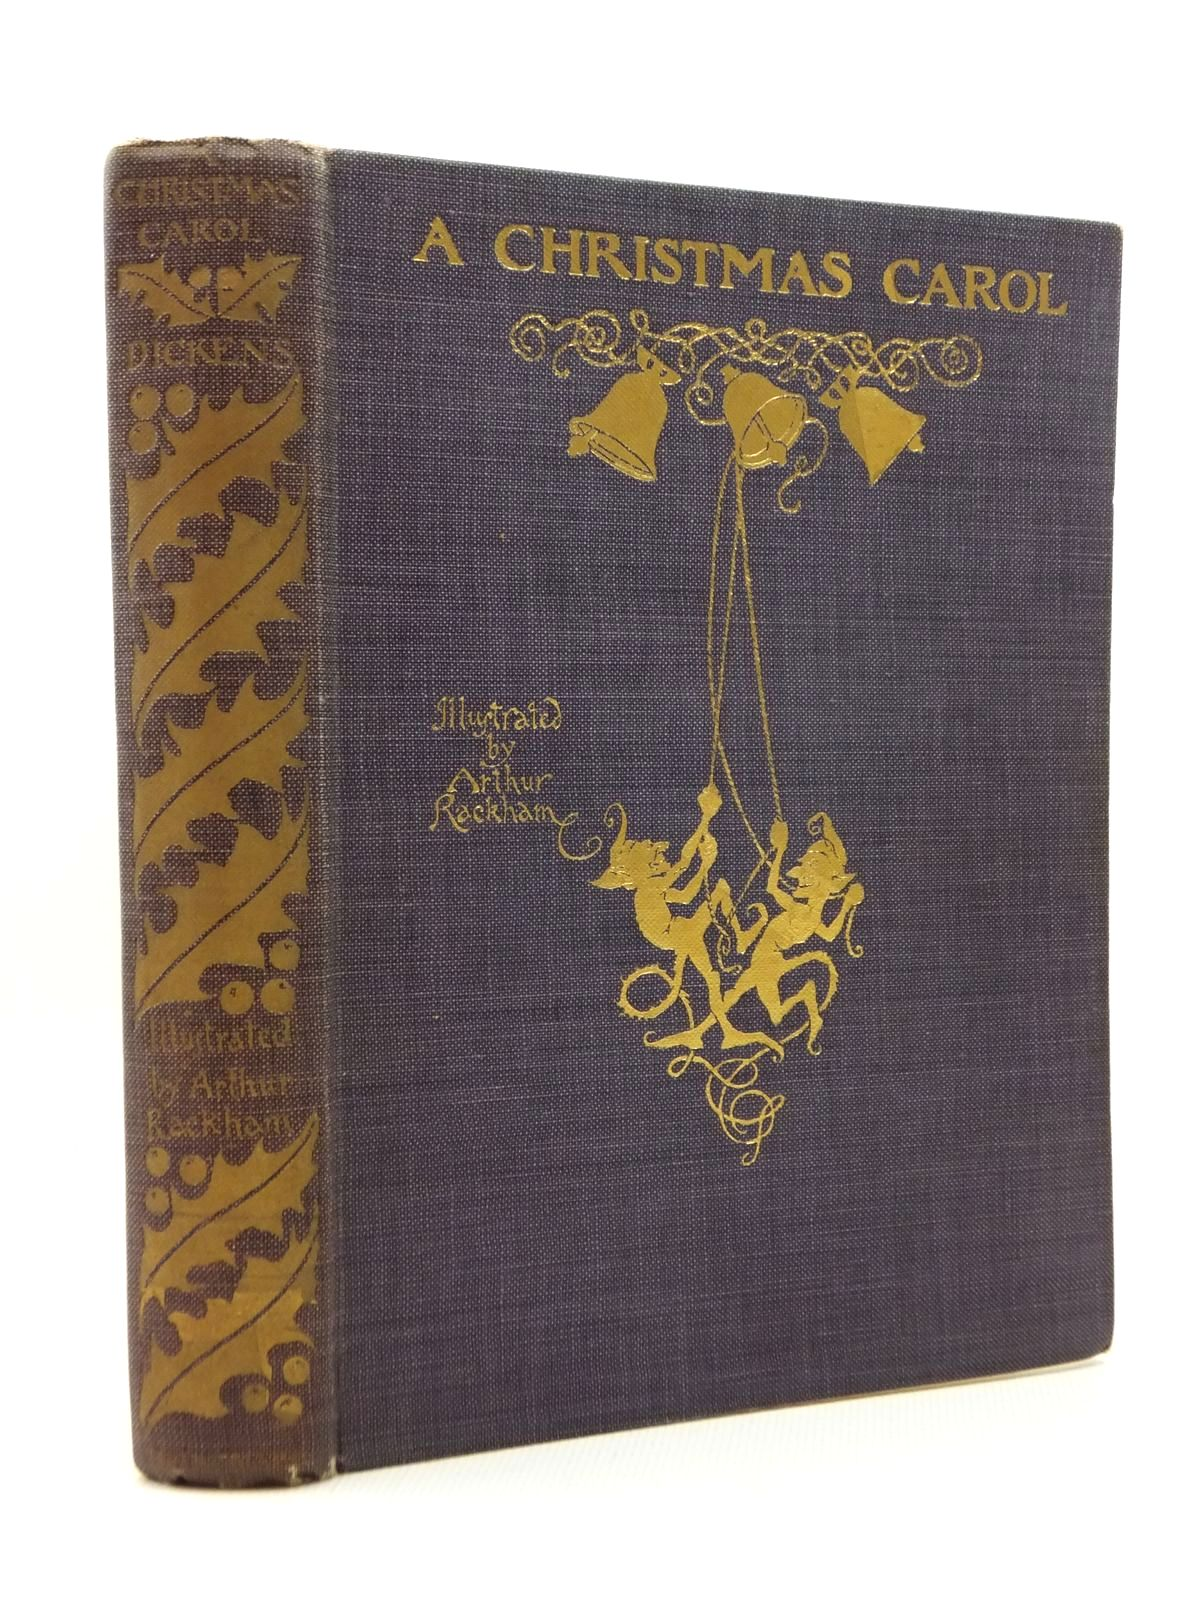 When Was A Christmas Carol Written.A Christmas Carol Written By Dickens Charles Stock Code